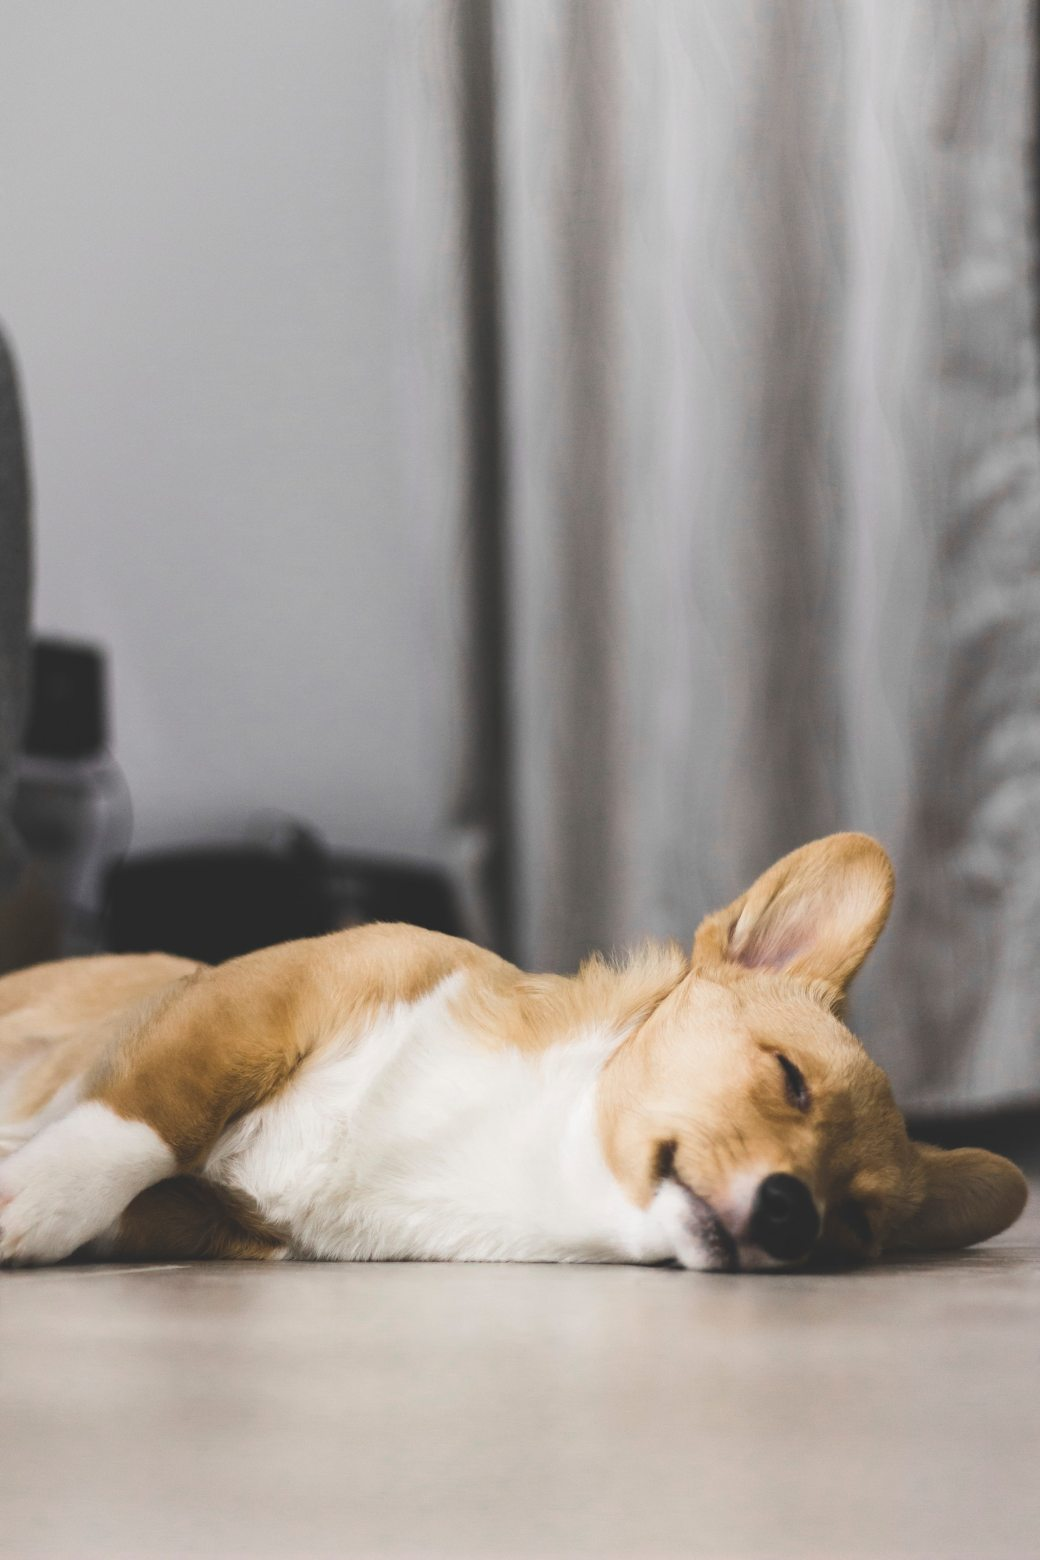 brown-and-white-corgi-laying-on-the-floor-1714454